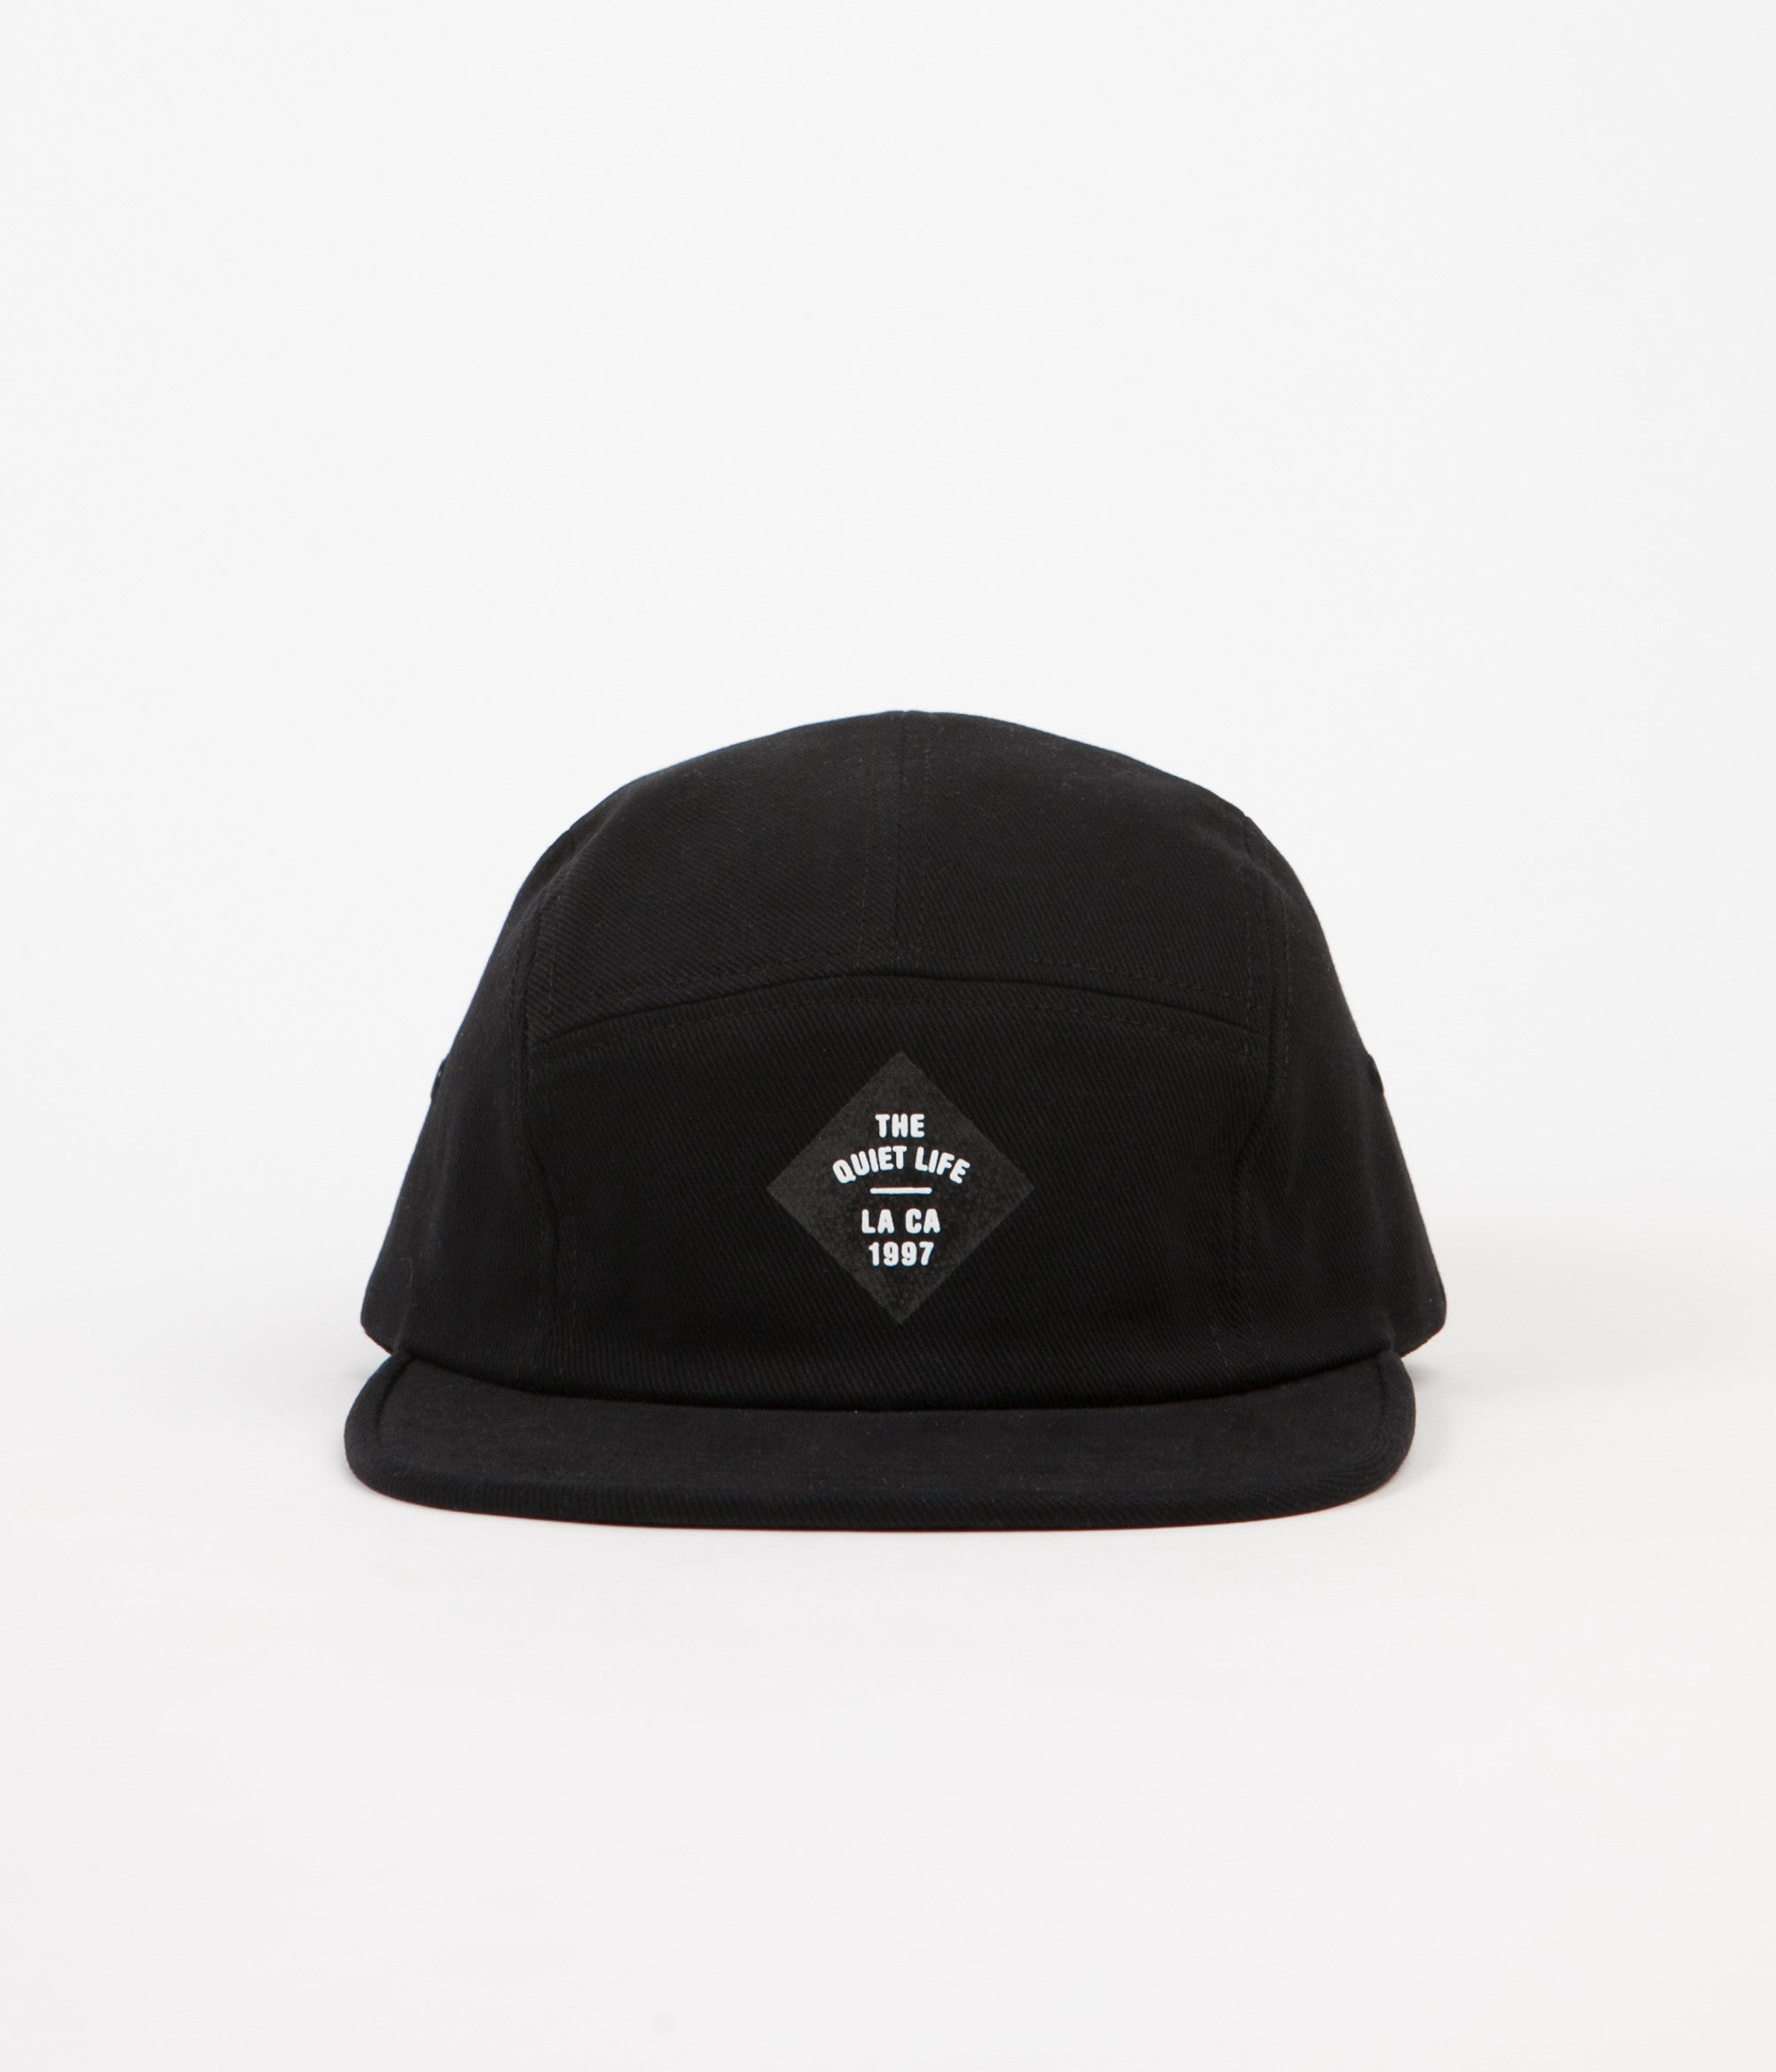 The Quiet Life Traveller 5 Panel Cap - Black